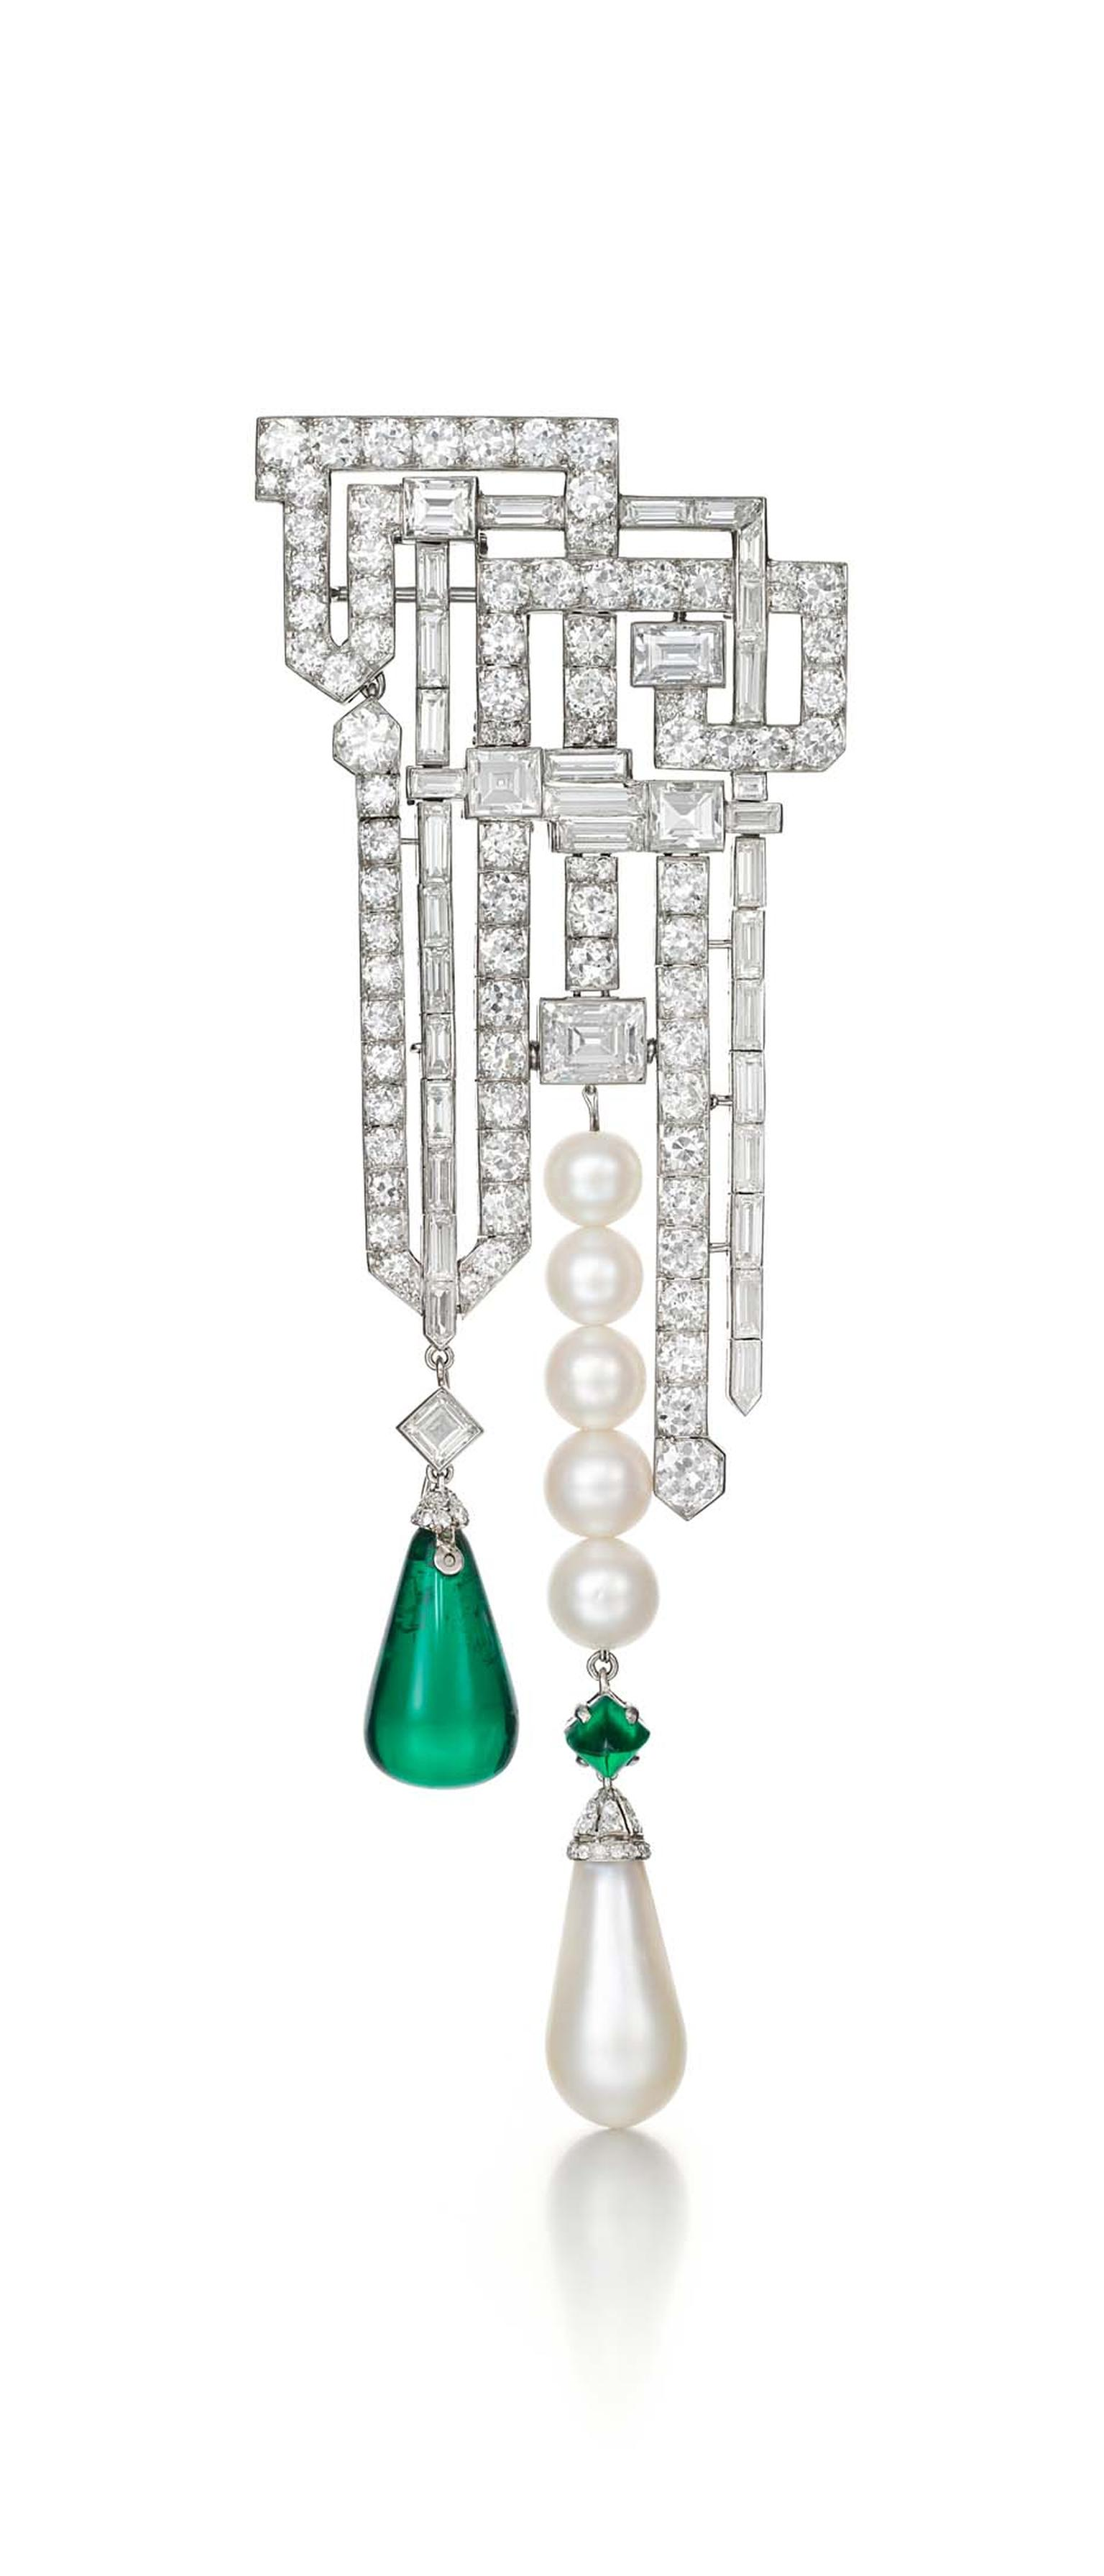 Siegelson is also exhibiting this Van Cleef & Arpels diamond, emerald and pearl brooch dating from 1926 at Masterpiece London.